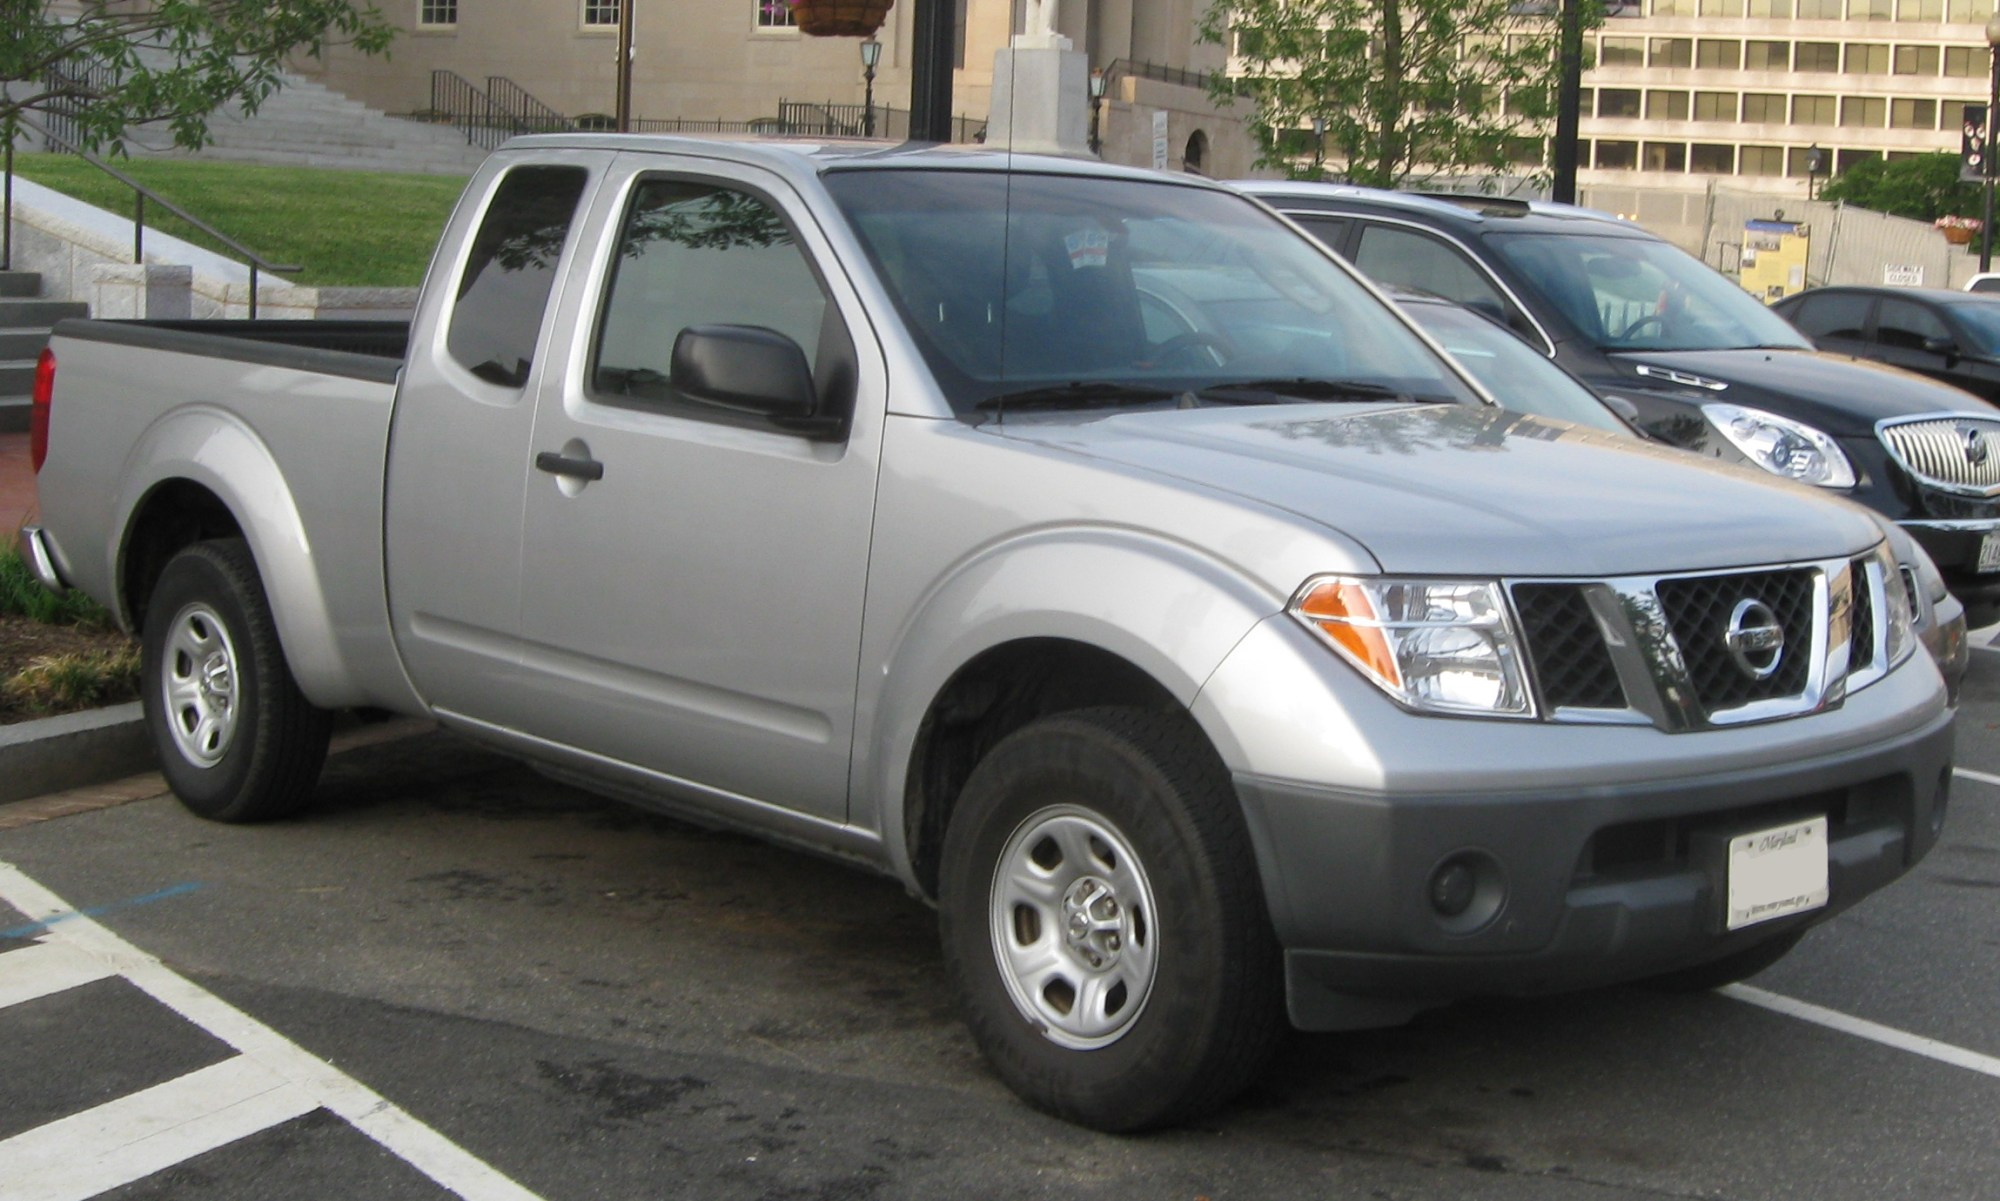 hight resolution of file 05 08 nissan frontier xe extended cab jpg